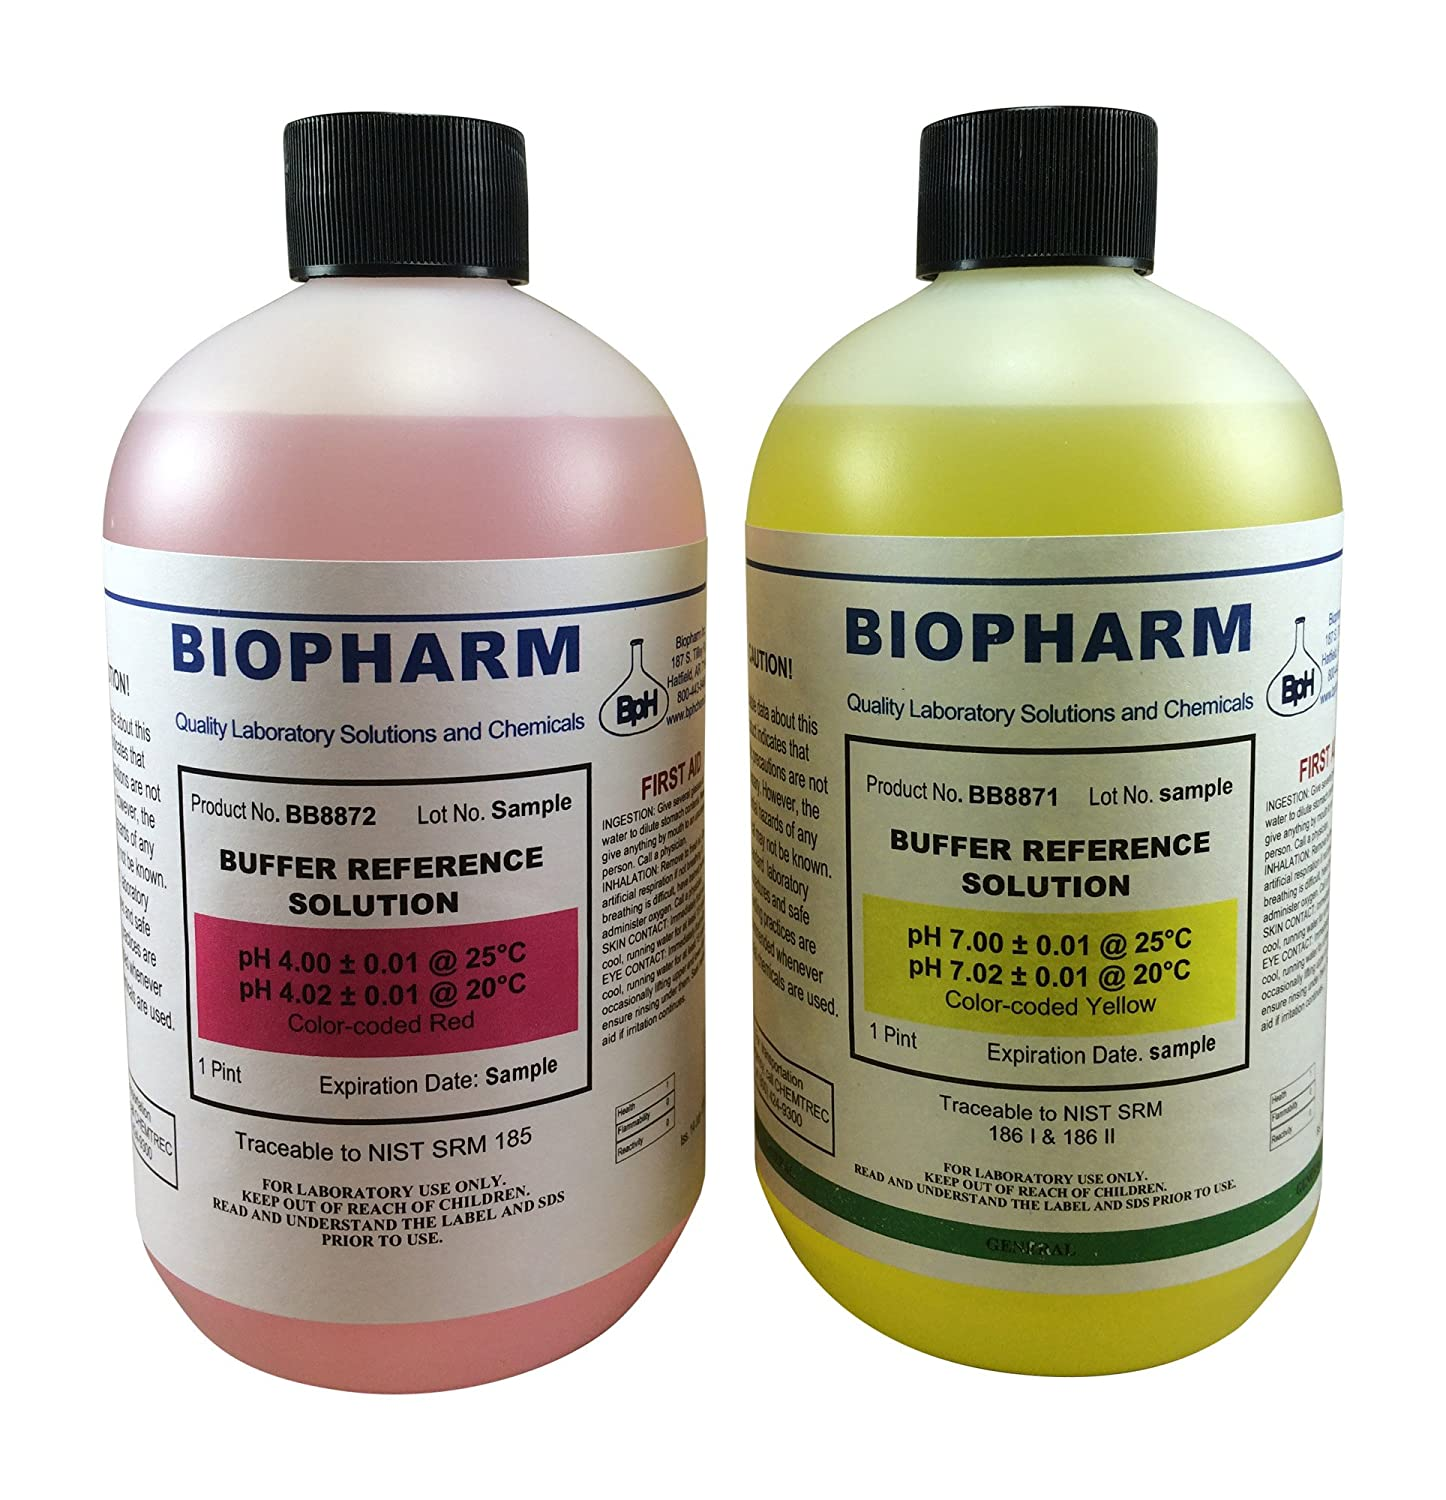 Biopharm pH Calibration Solution Kit (2) 16oz (500 ml) Bottles pH 4 and pH 7 Buffer NIST Traceable Reference Standards for All pH Meters